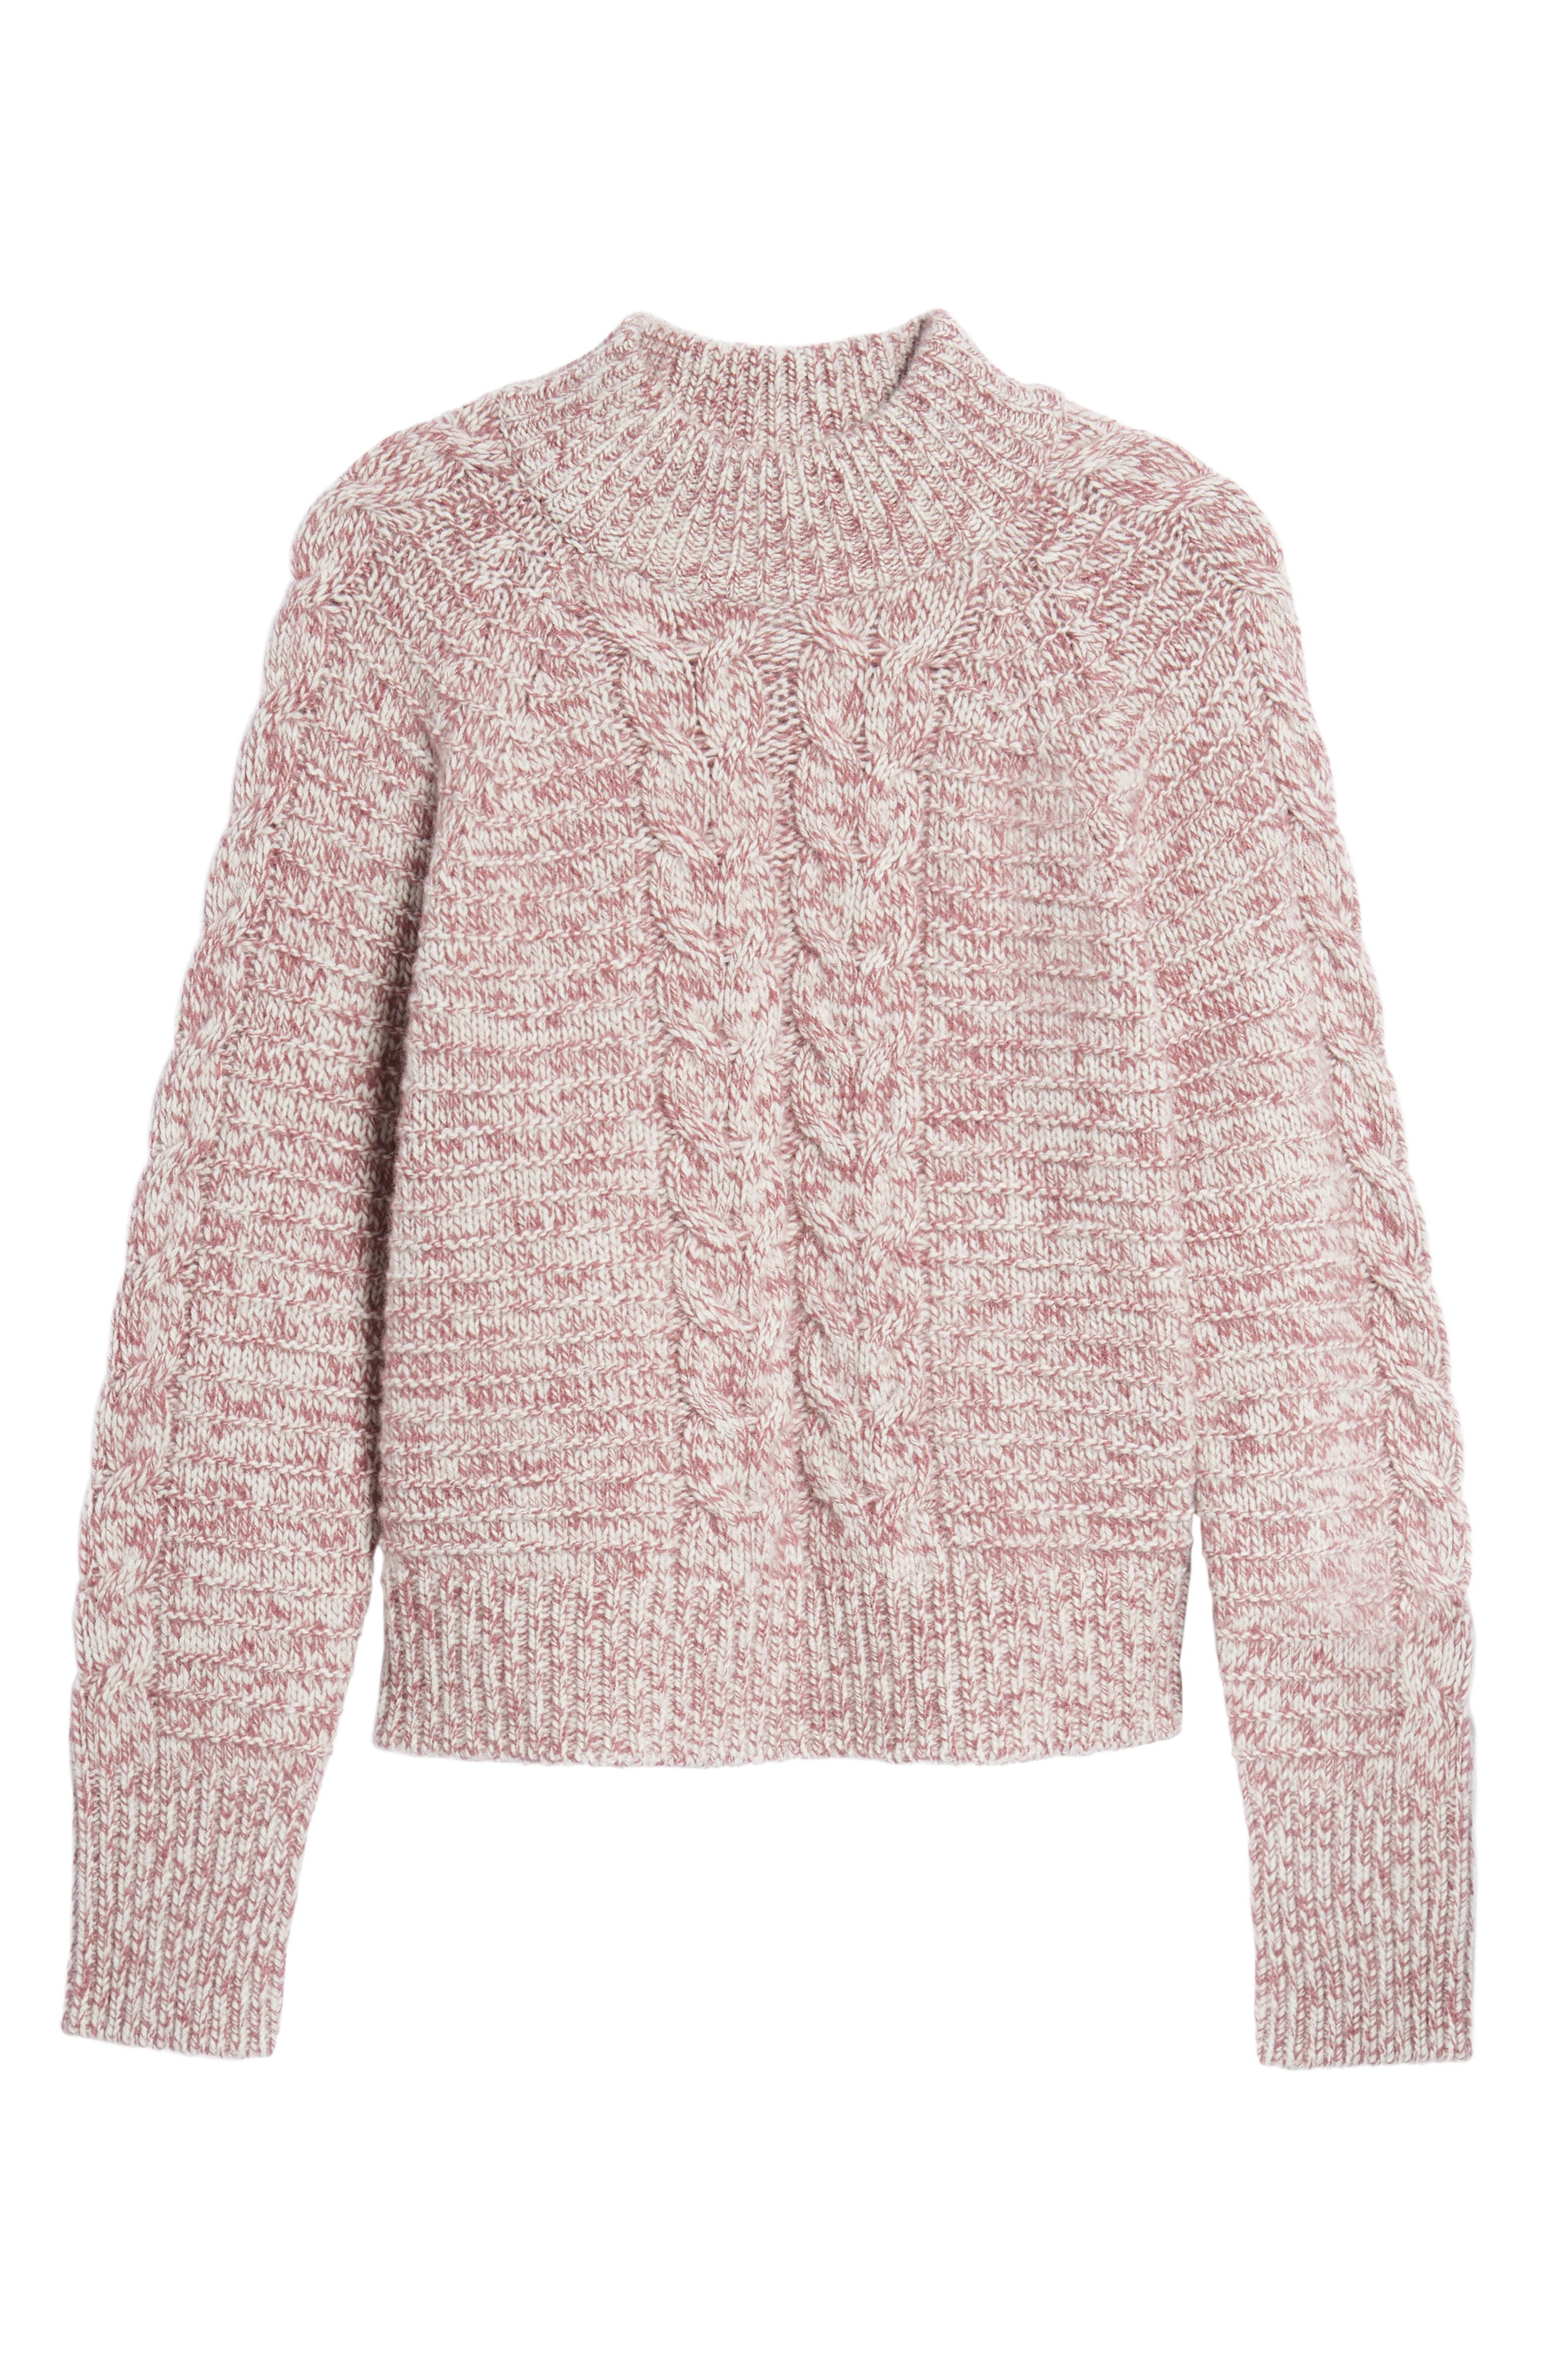 Cashmere Cable Knit Sweater,                             Alternate thumbnail 6, color,                             938